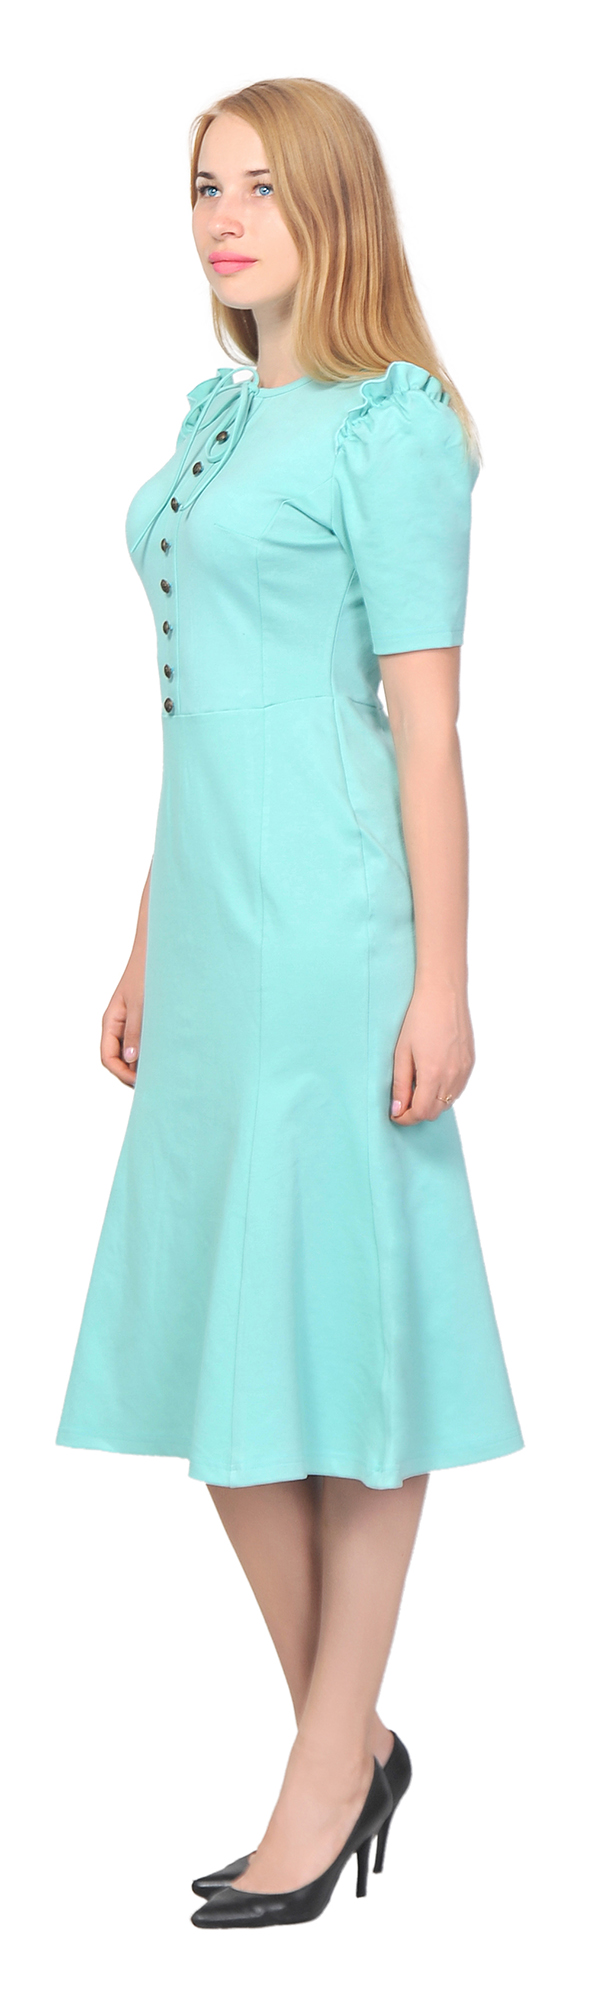 Magnificent Tea Party Dresses For Adults Collection - All Wedding ...